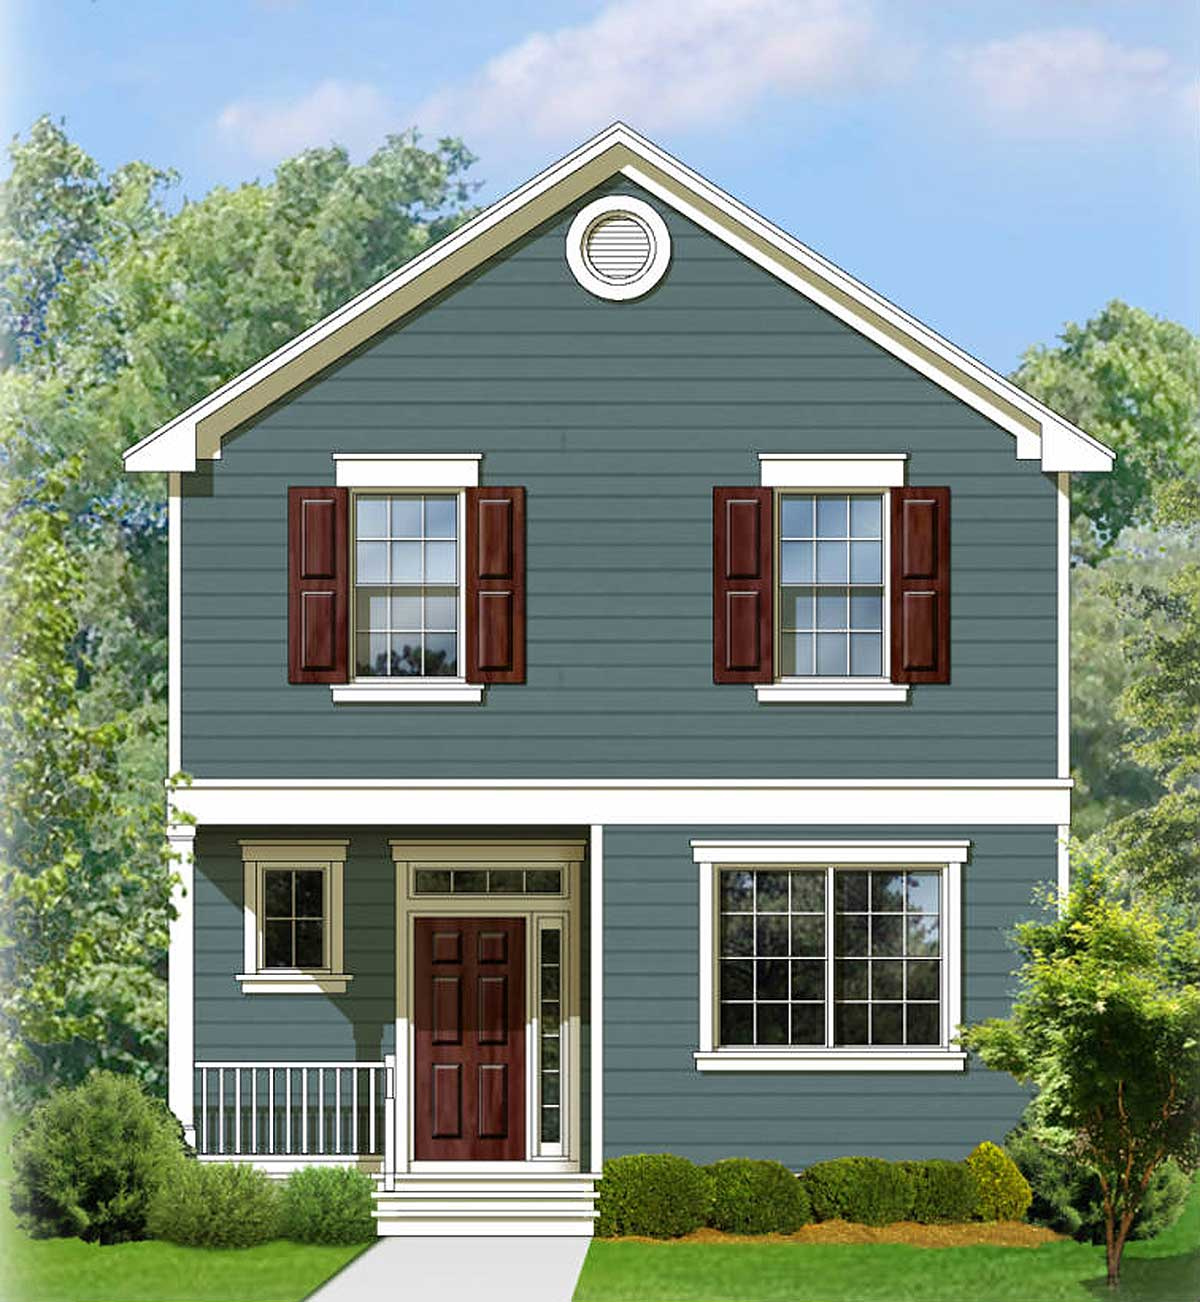 Two story traditional house plan 82083ka architectural for 2 story farmhouse plans